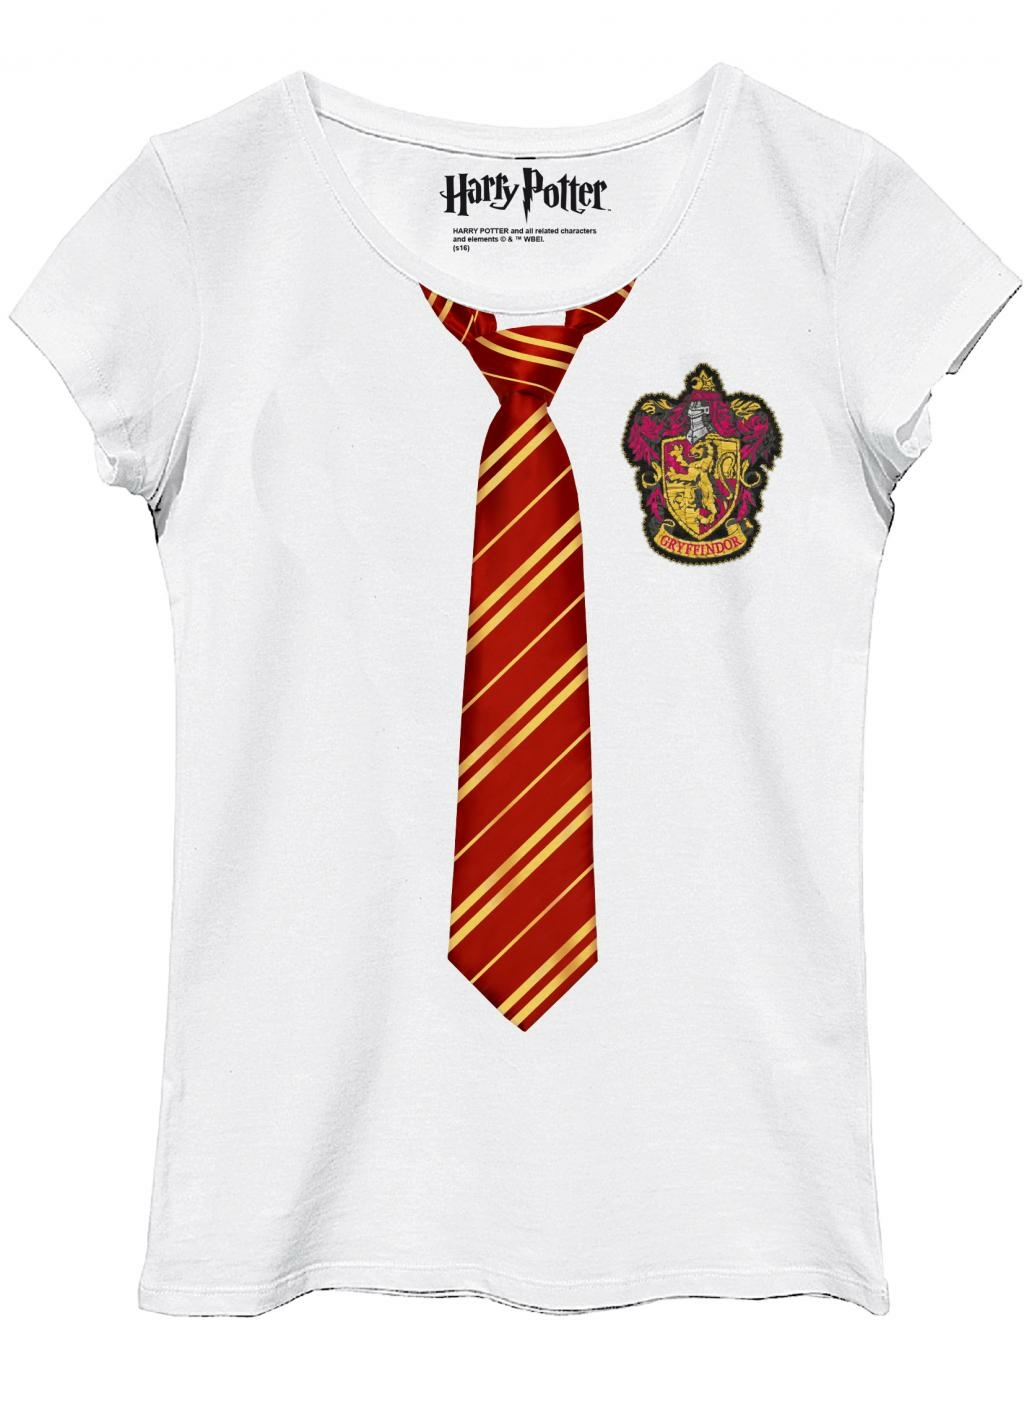 Disguise Potter Harry Shirt Girlxl T Gryffindor N0wnvm8